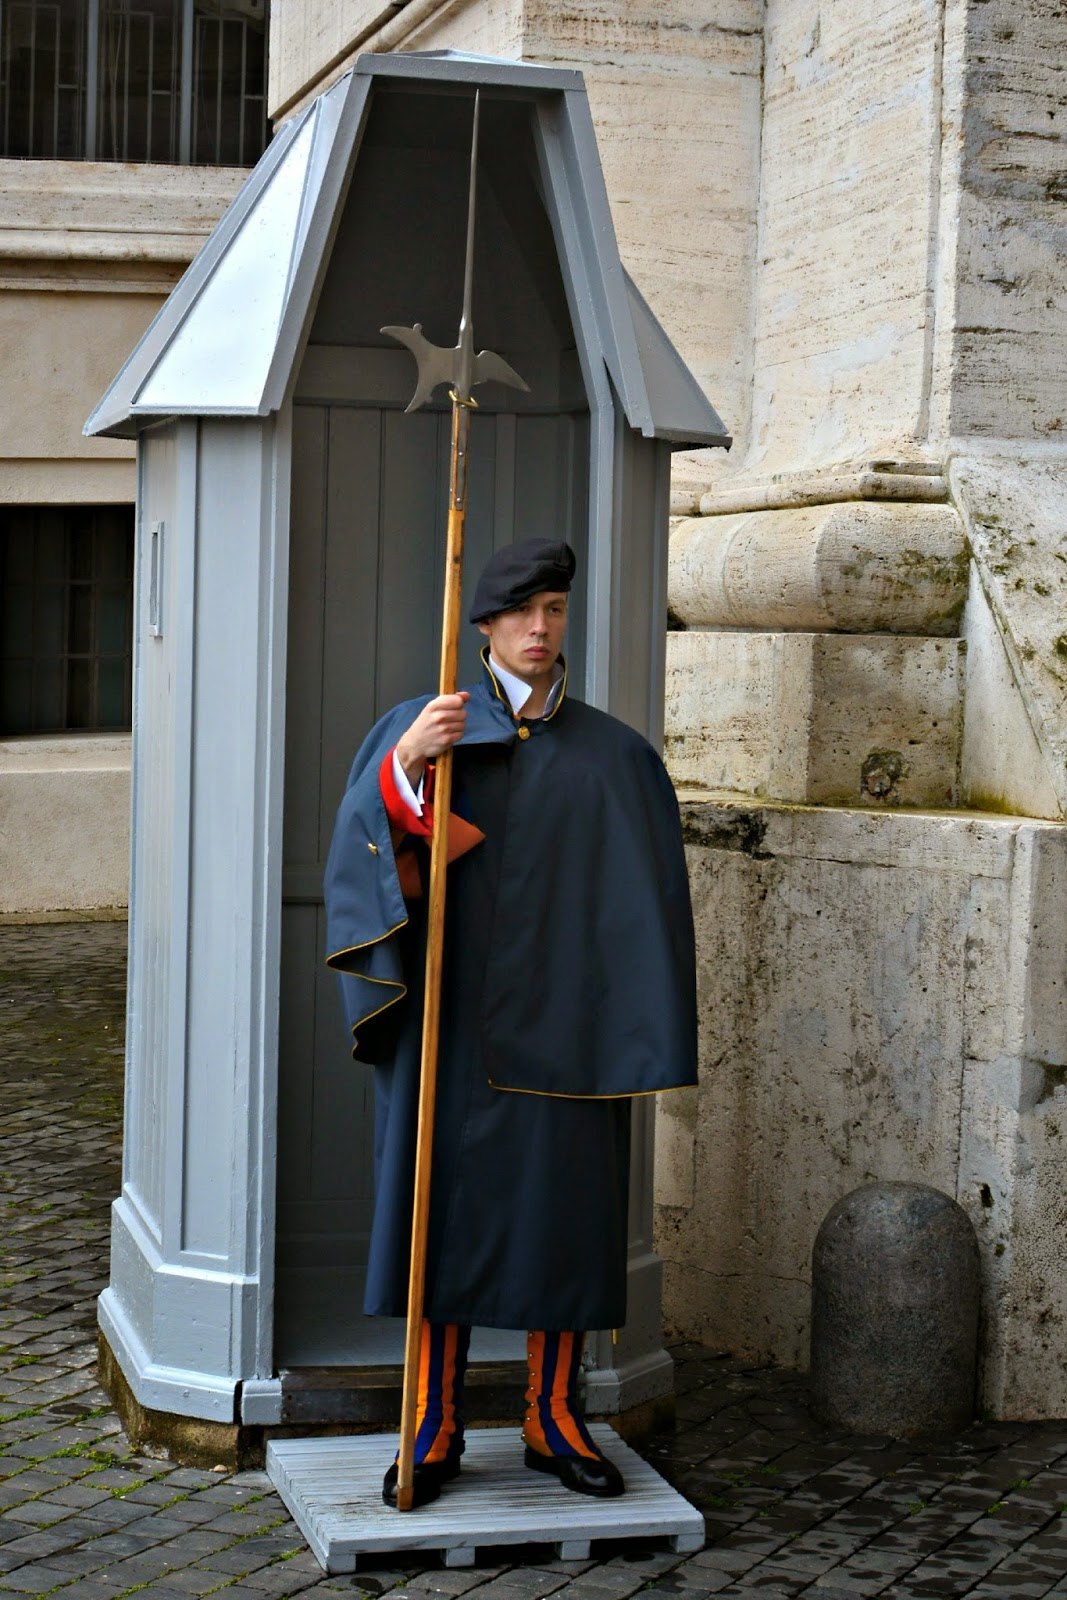 Swiss Guard at the Vatican Holy See